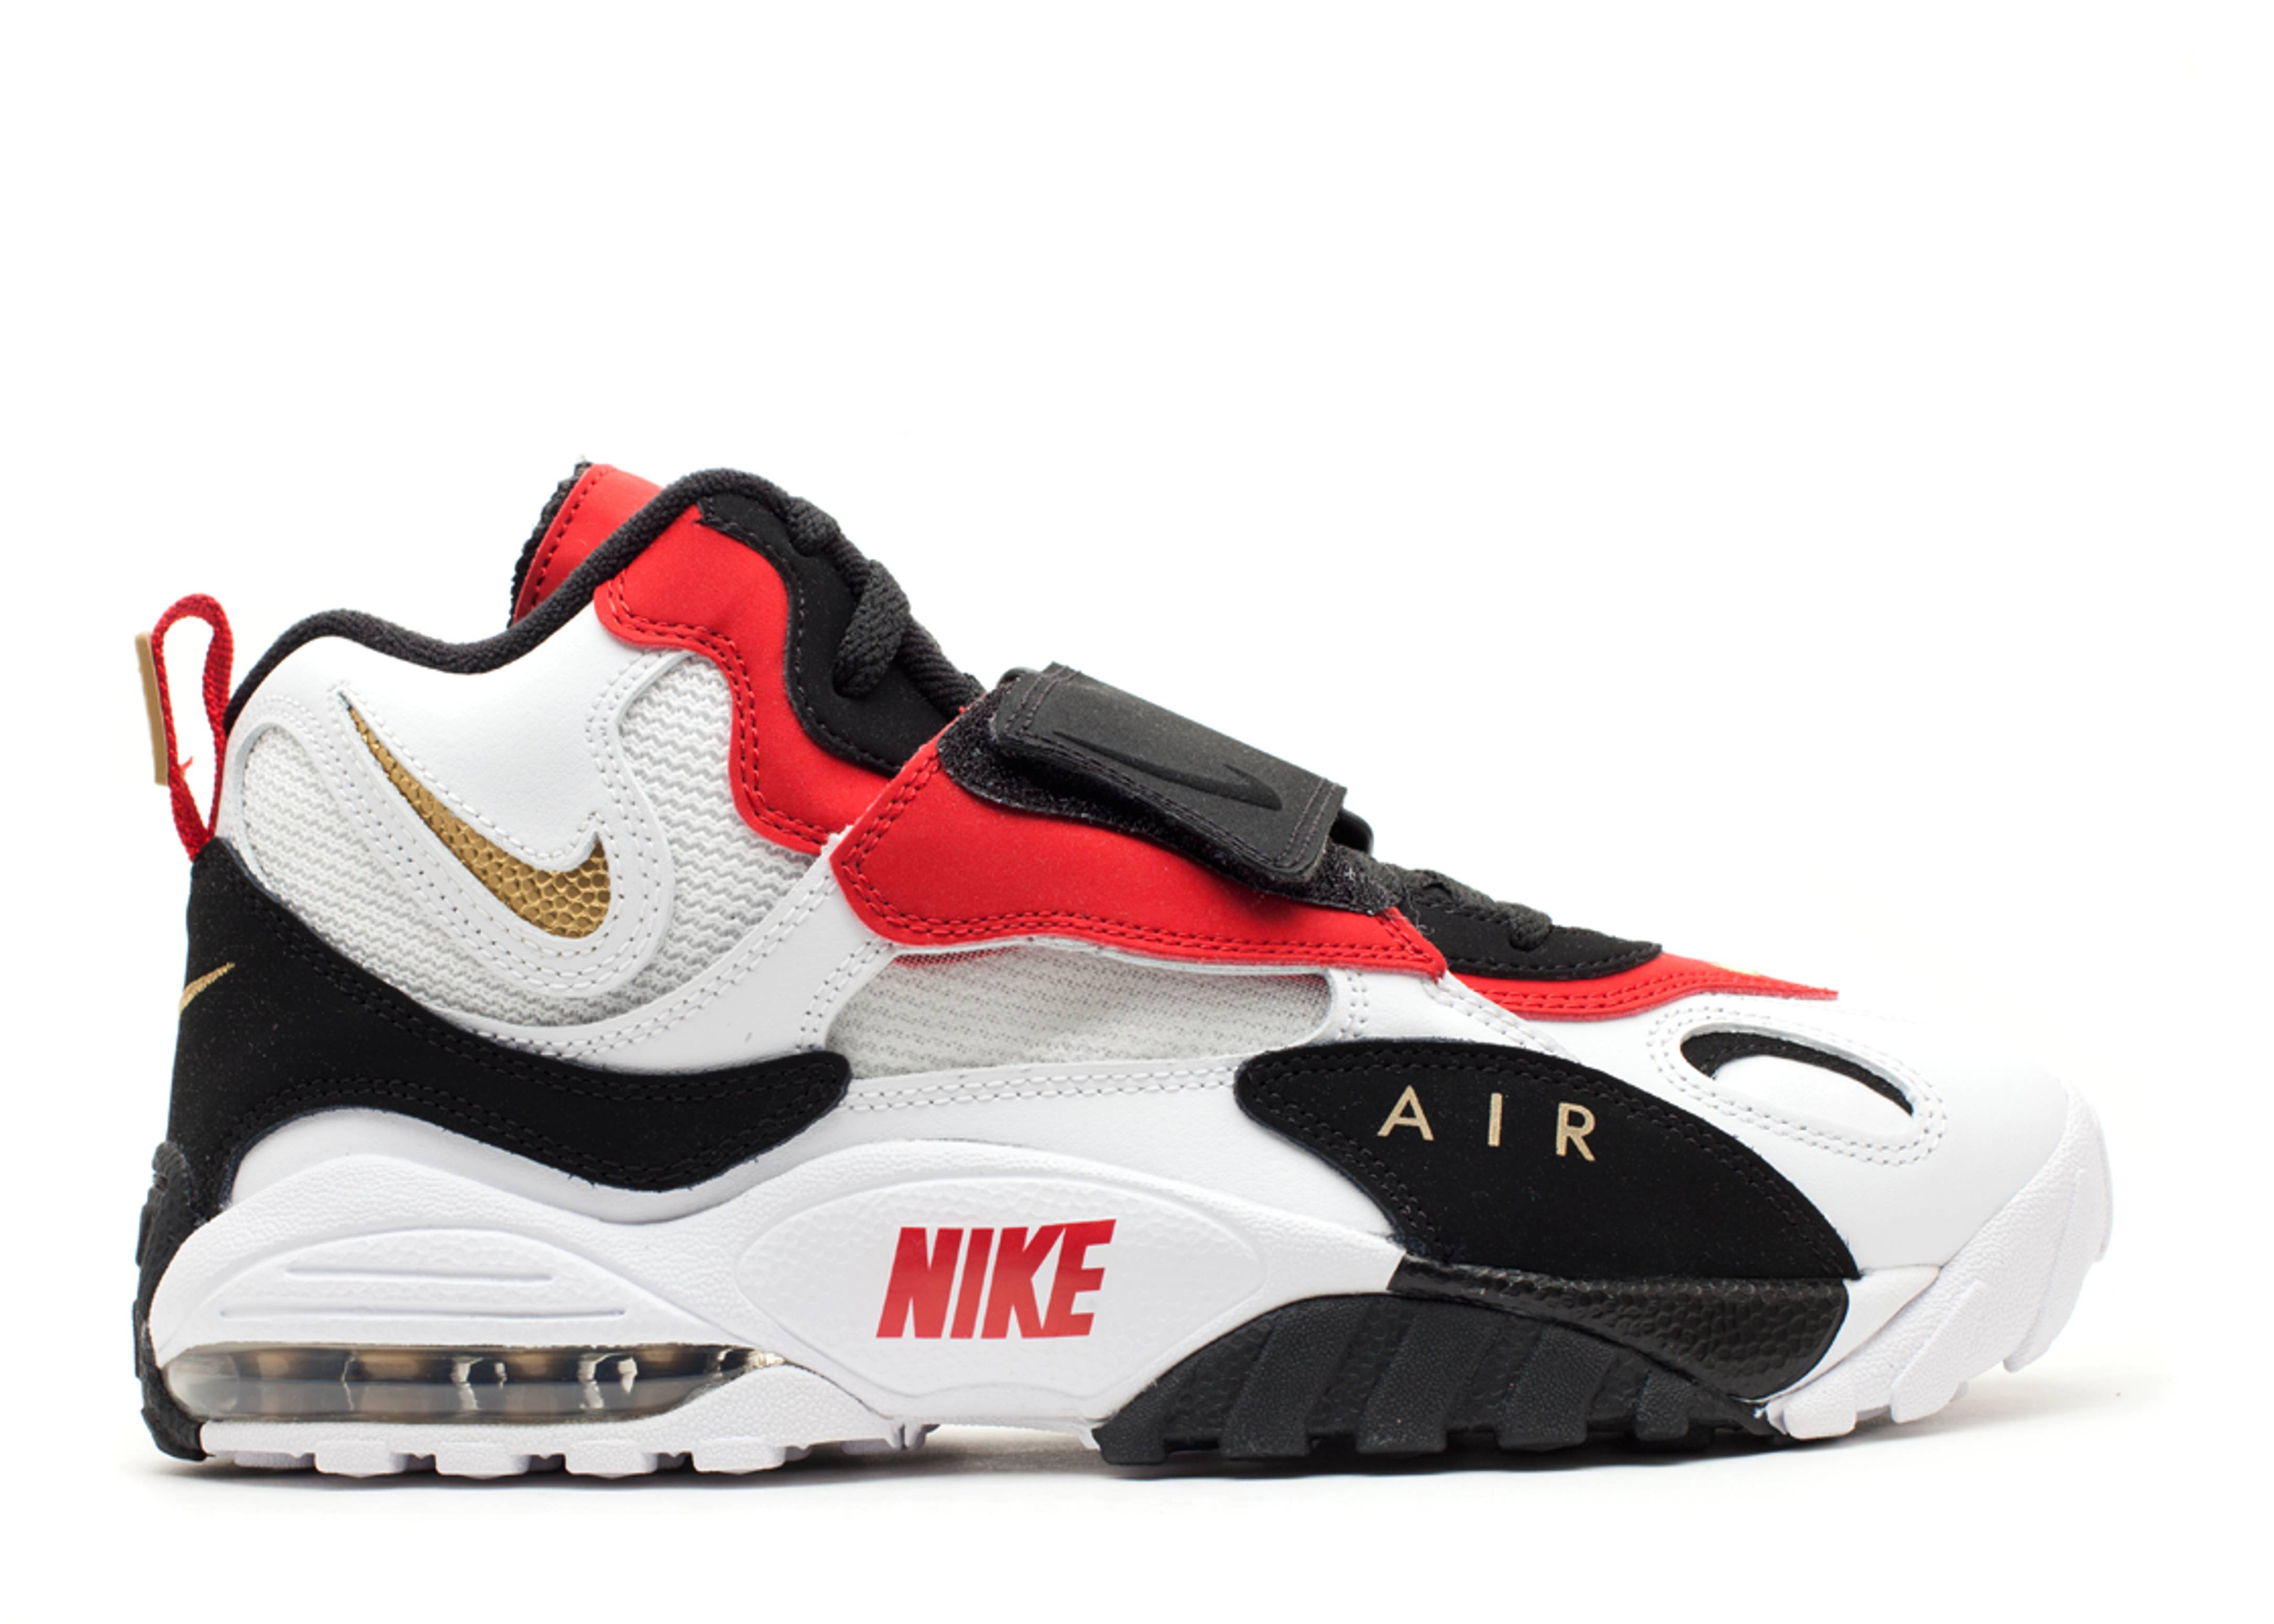 Nike Air Speed Turf Black - Musée des impressionnismes Giverny 87d8f6066afd4